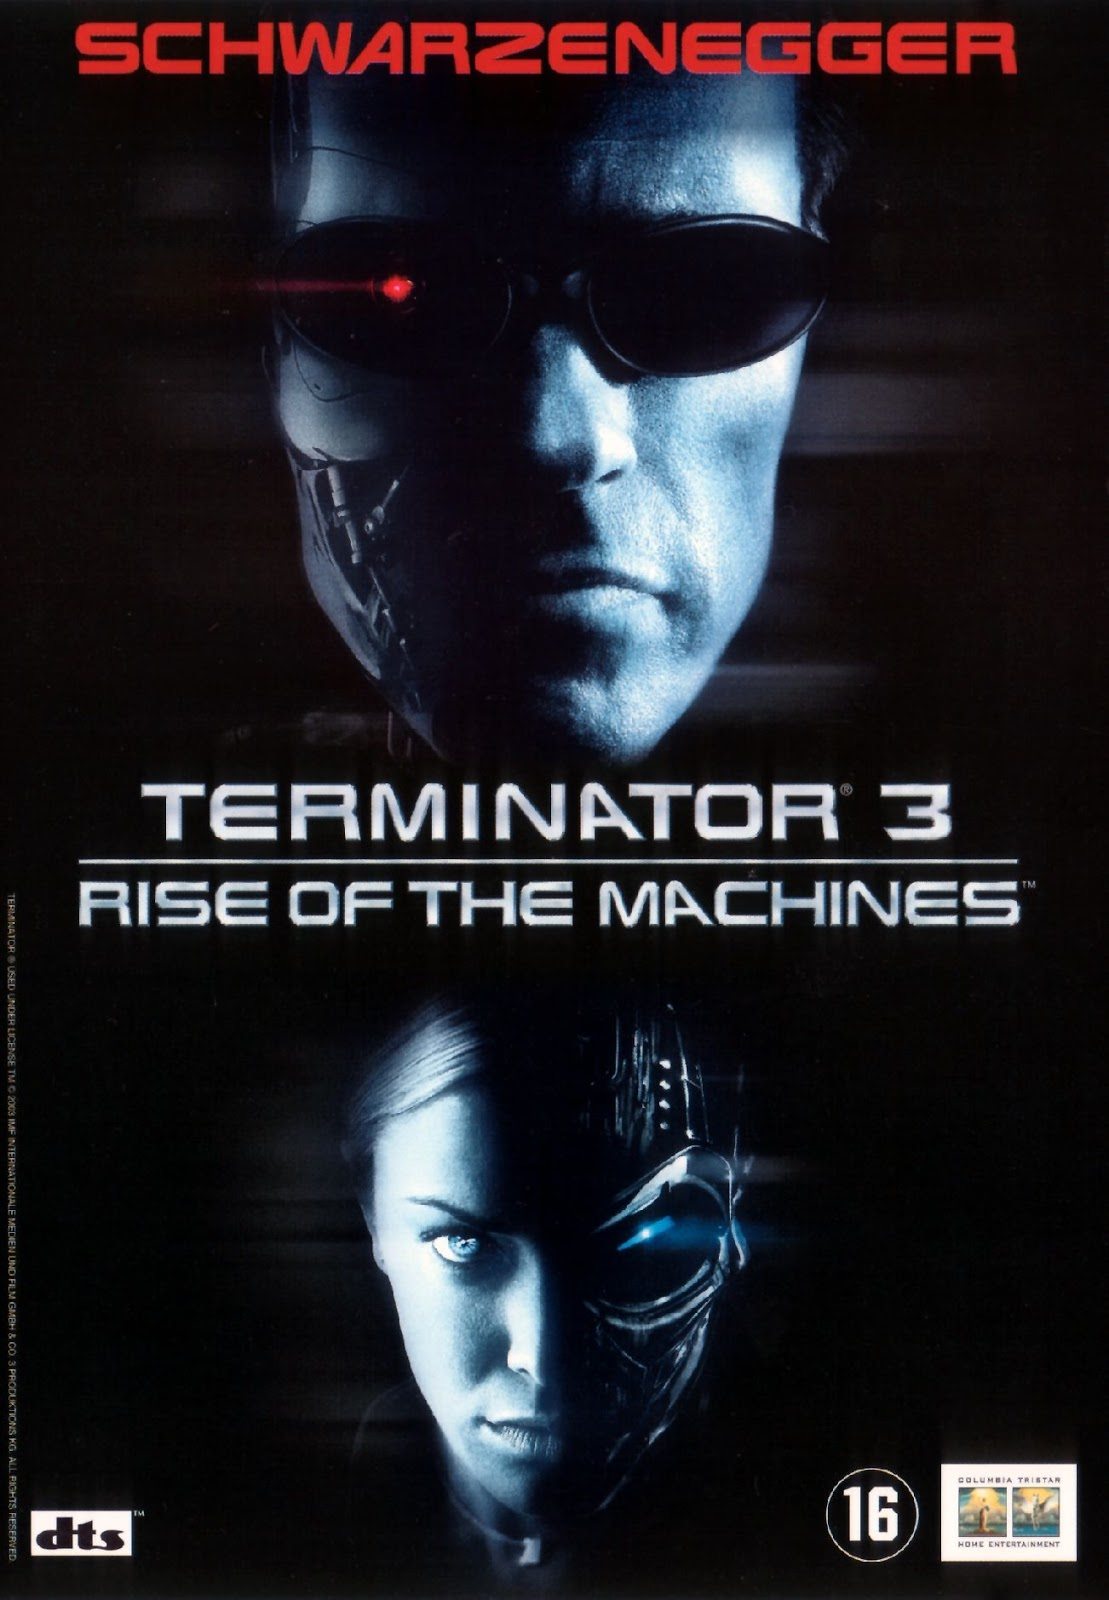 Terminator 3: Rise of the Machines 2003